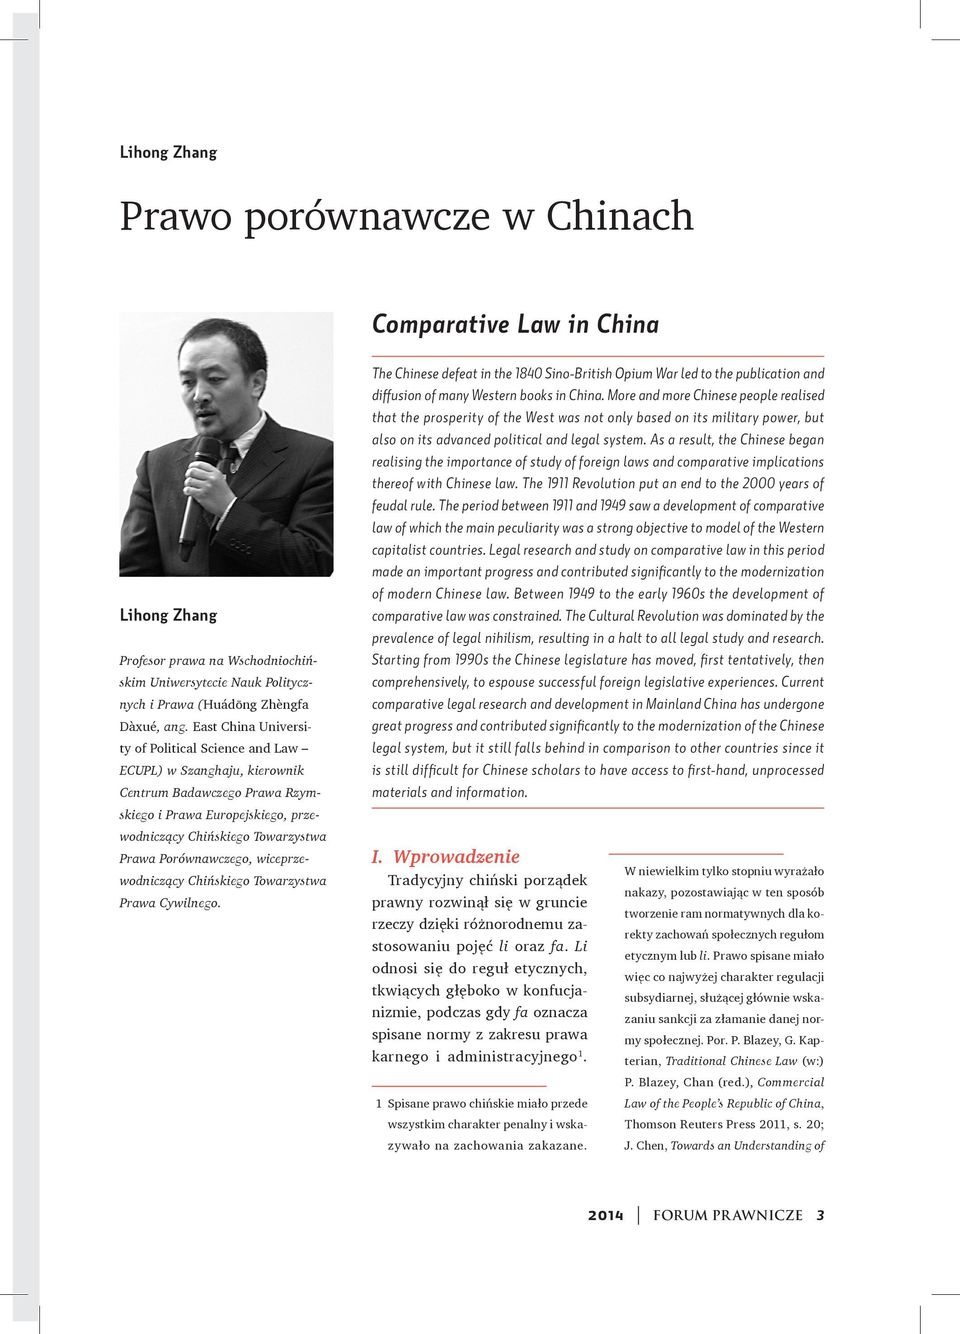 wiceprzewodniczący Chińskiego Towarzystwa Prawa Cywilnego. The Chinese defeat in the 1840 Sino-British Opium War led to the publication and diffusion of many Western books in China.